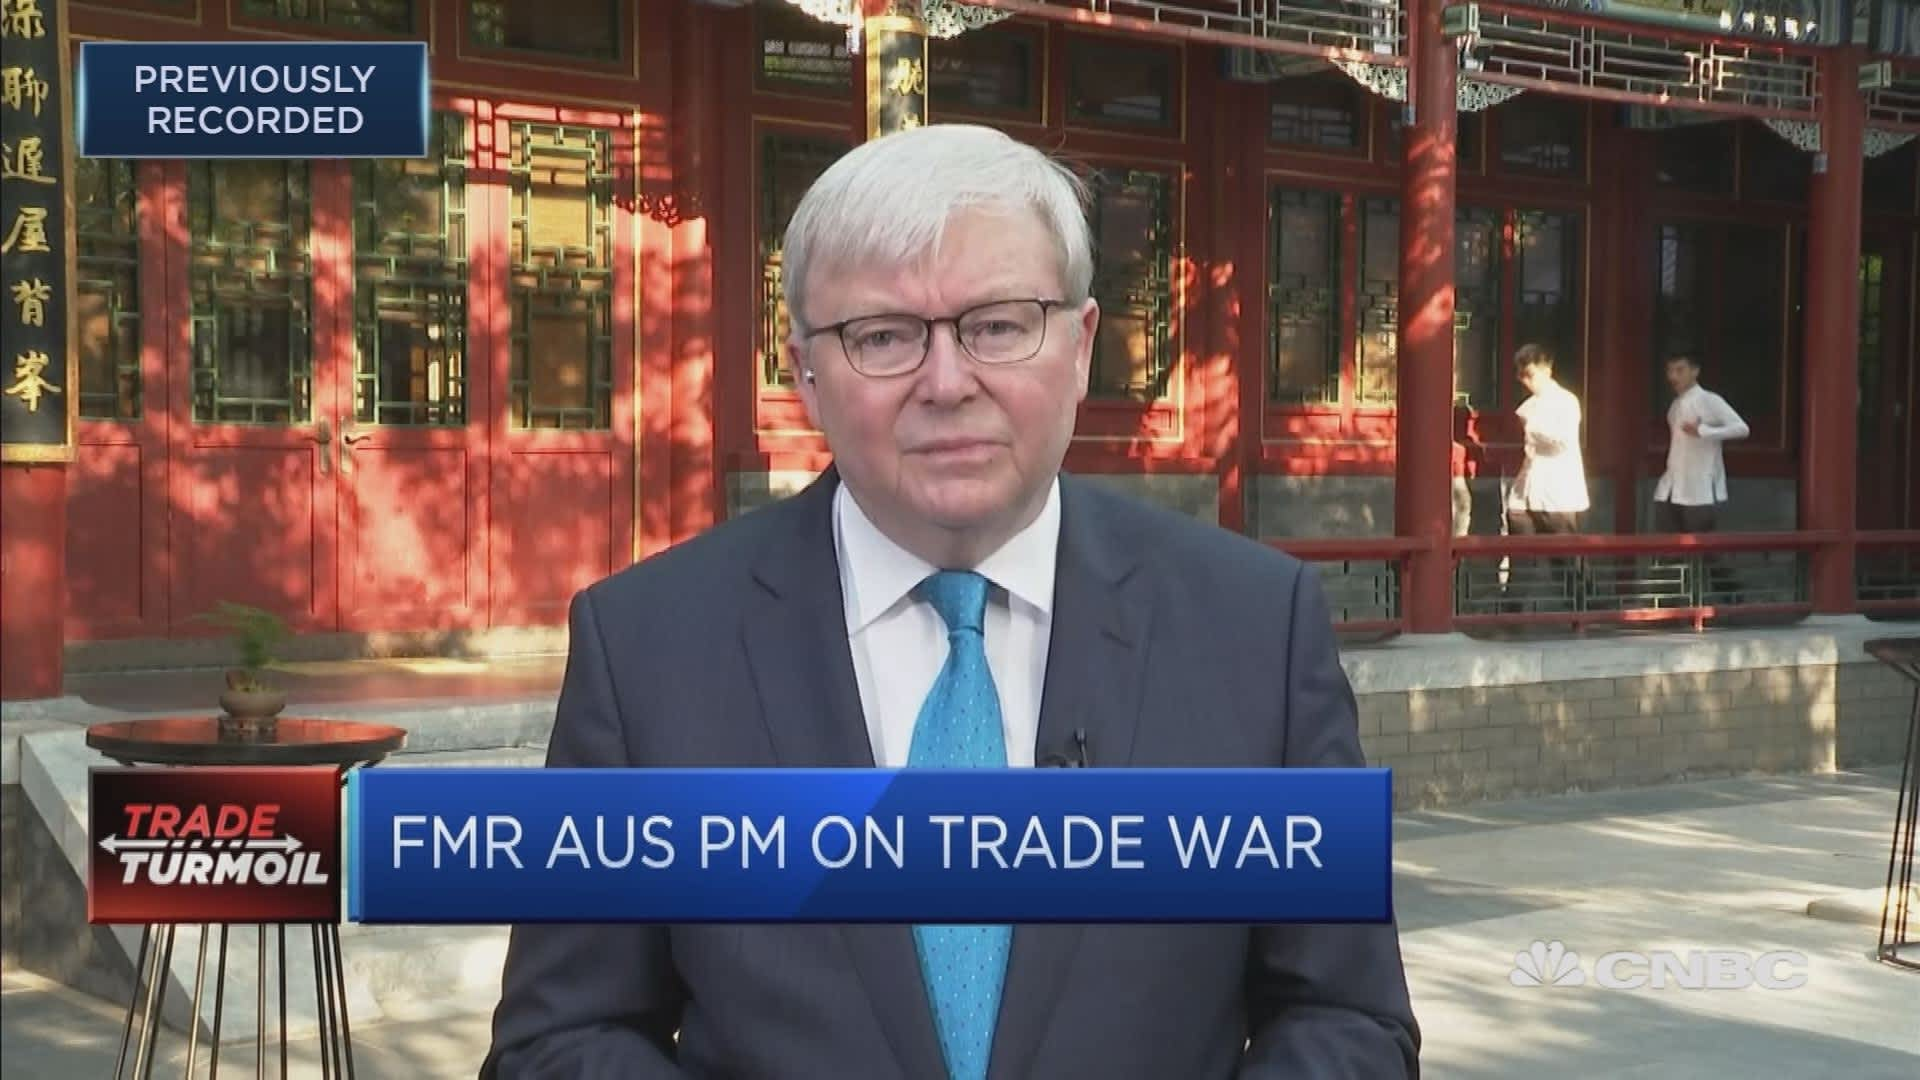 There S A Movement Of Low Level Defiance In China Kevin Rudd